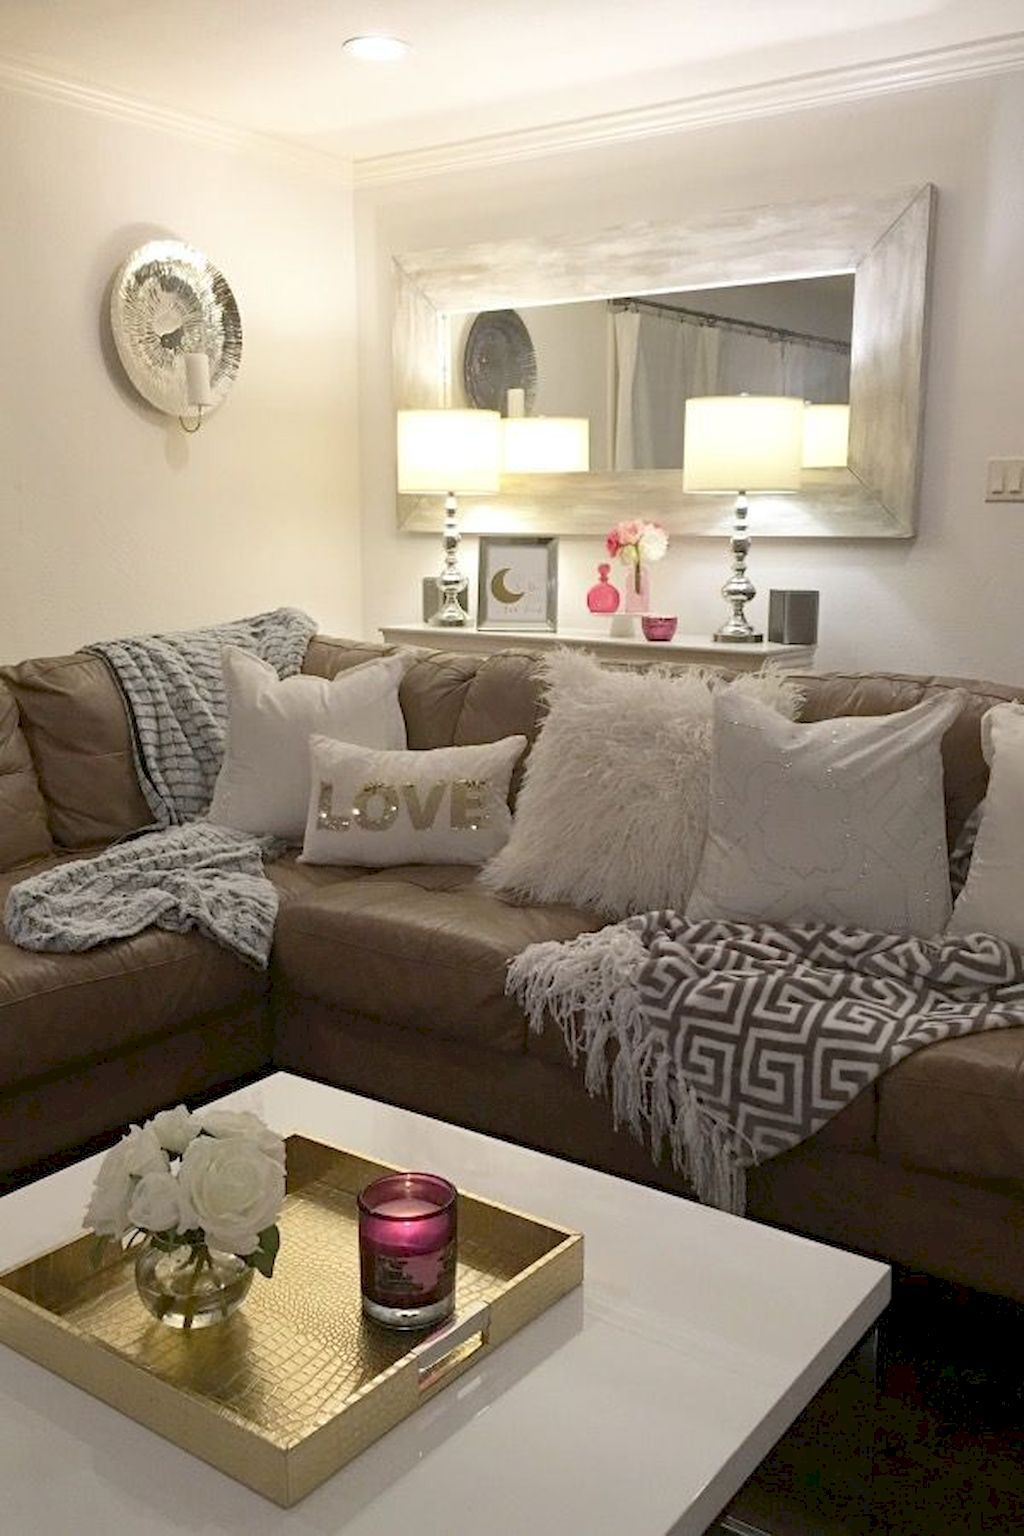 Nice 75 Clever College Apartment Decorating Ideas on A ... on Awesome Apartment Budget Apartment Living Room Ideas  id=69999